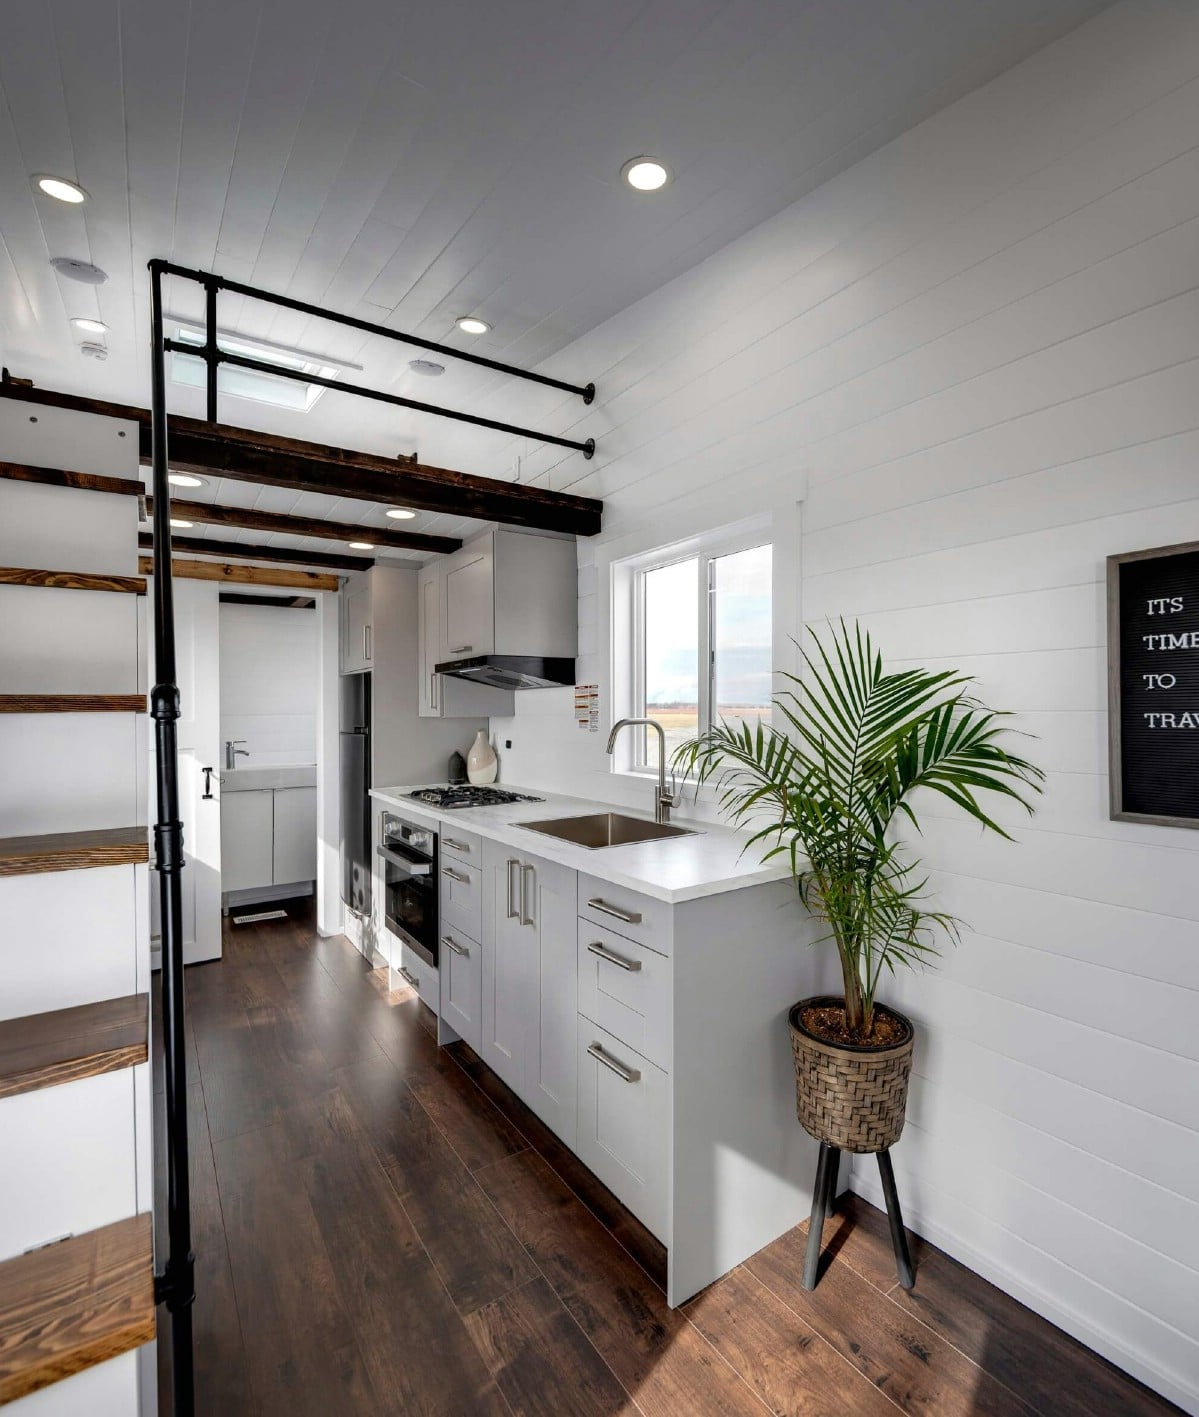 Ladder to loft on left side of image with kitchen counter in background